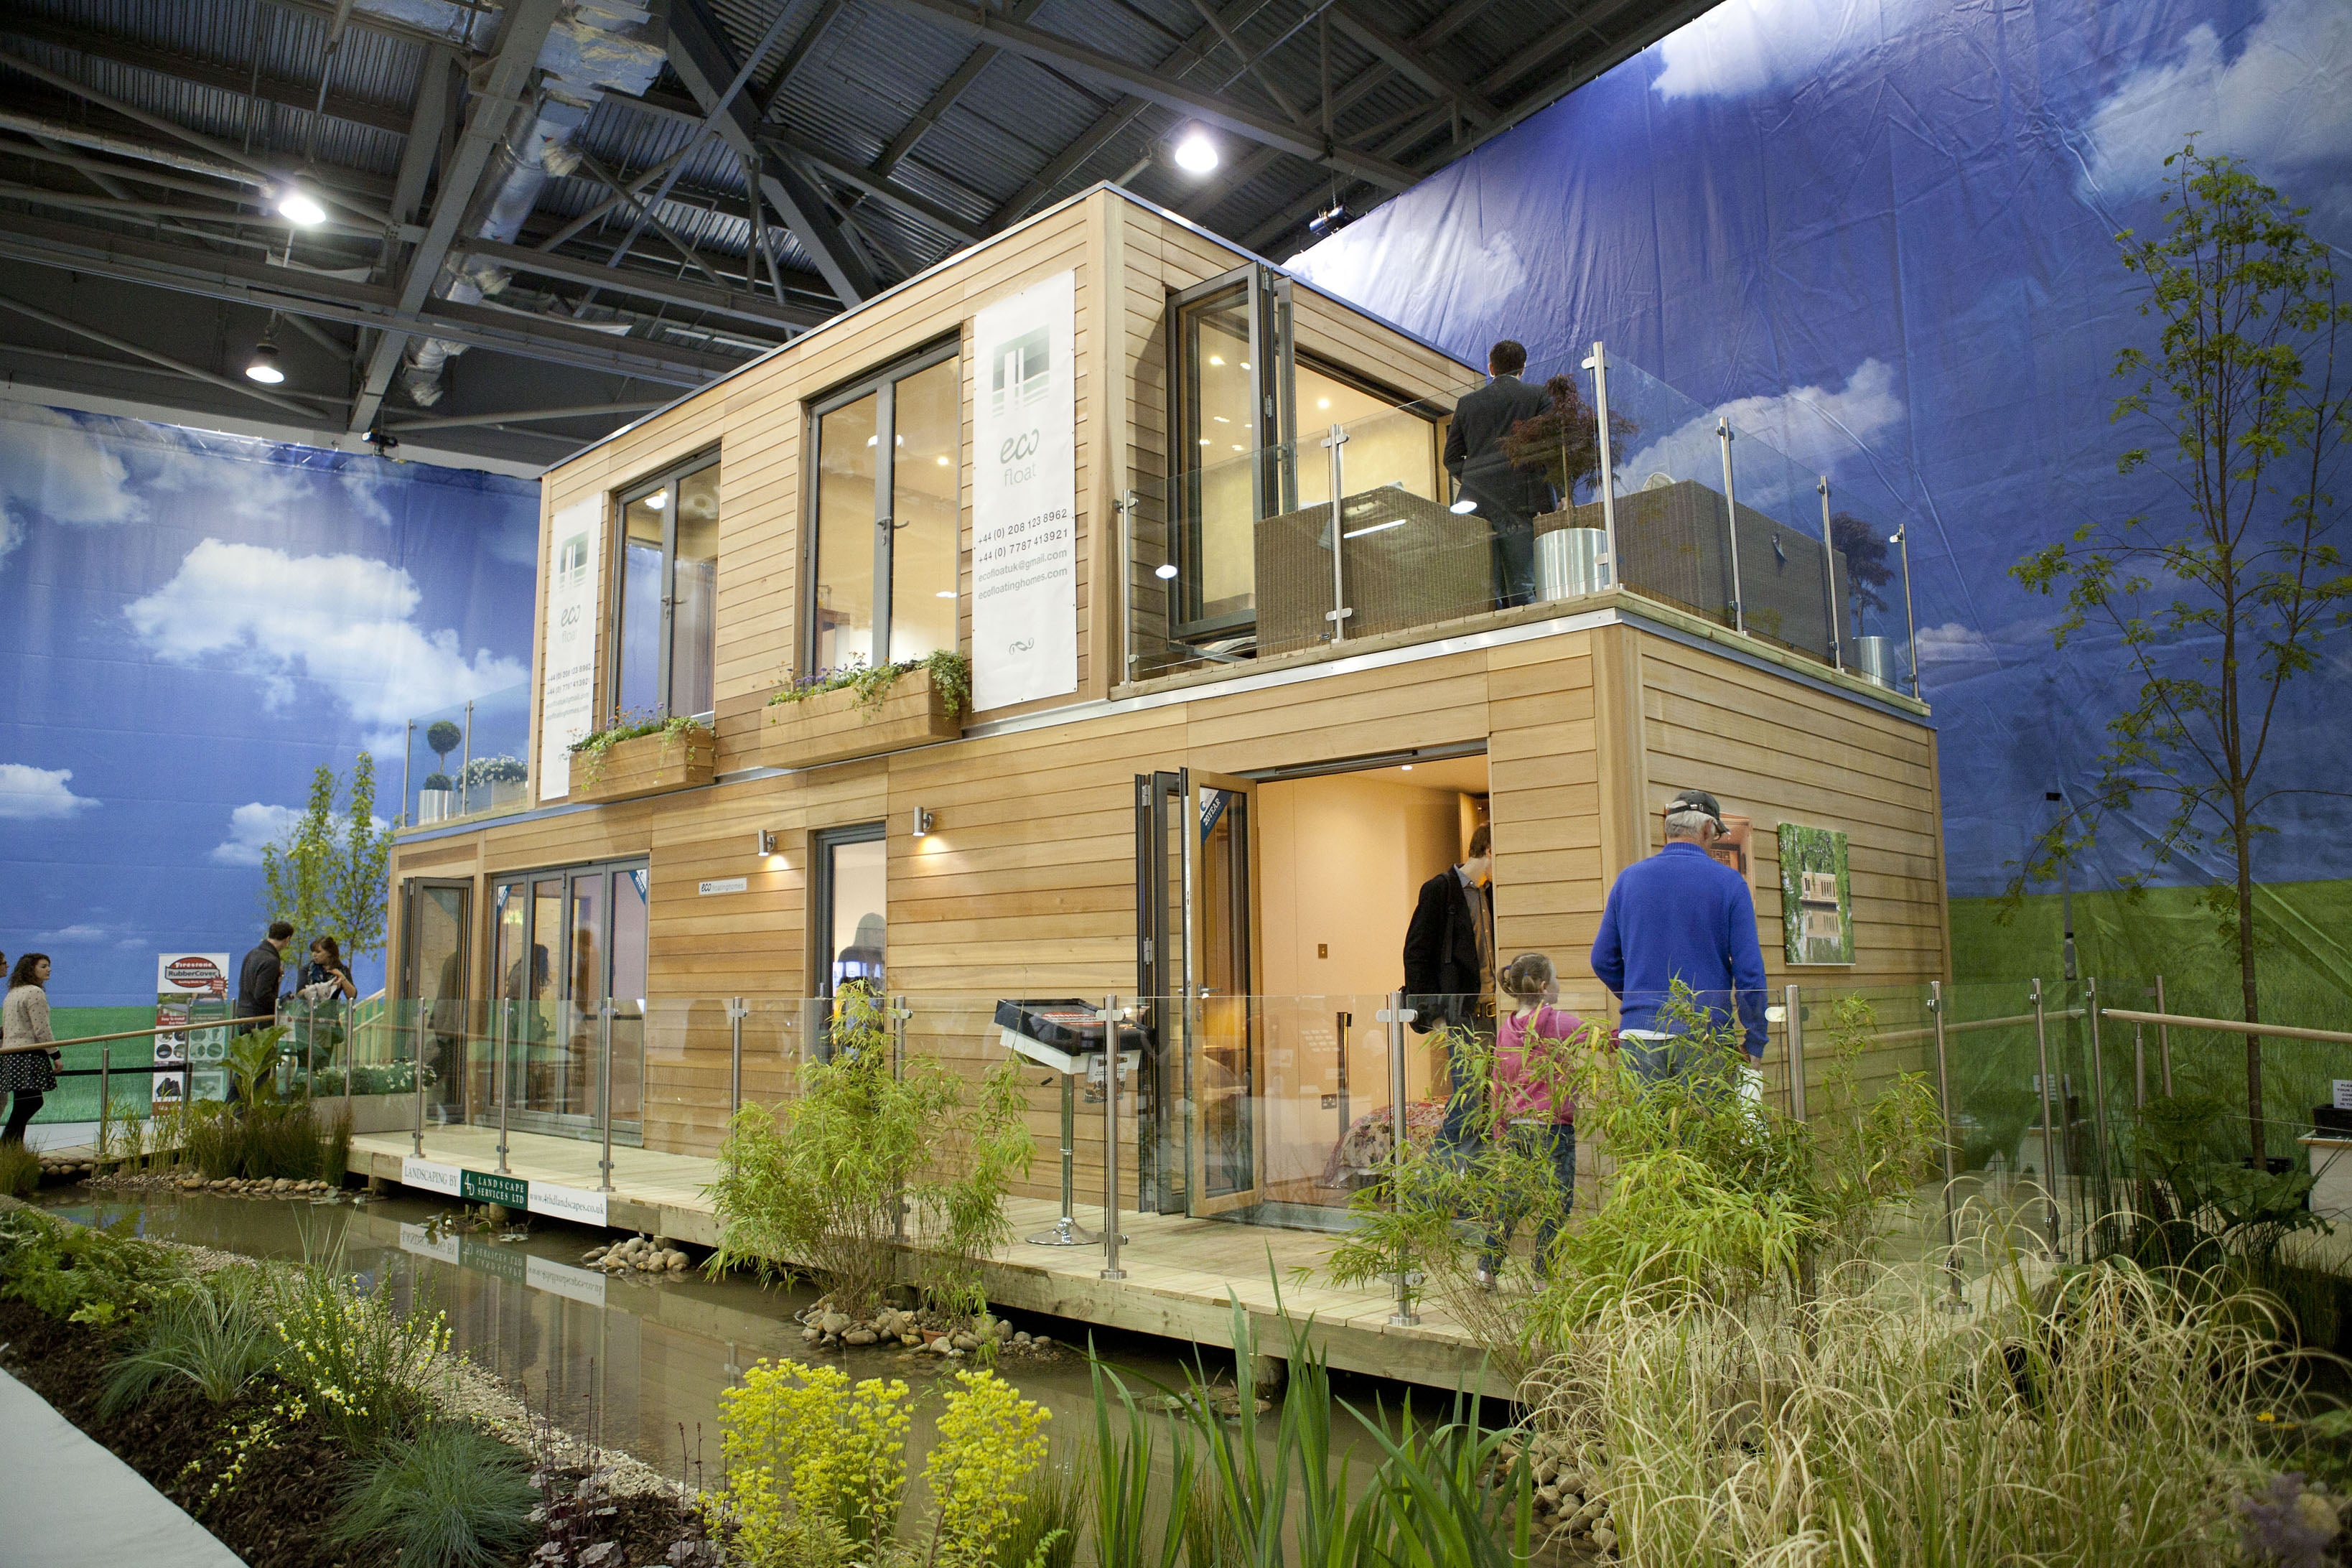 Free tickets to grand designs live 2016 homeowners alliance for Grand designs garden